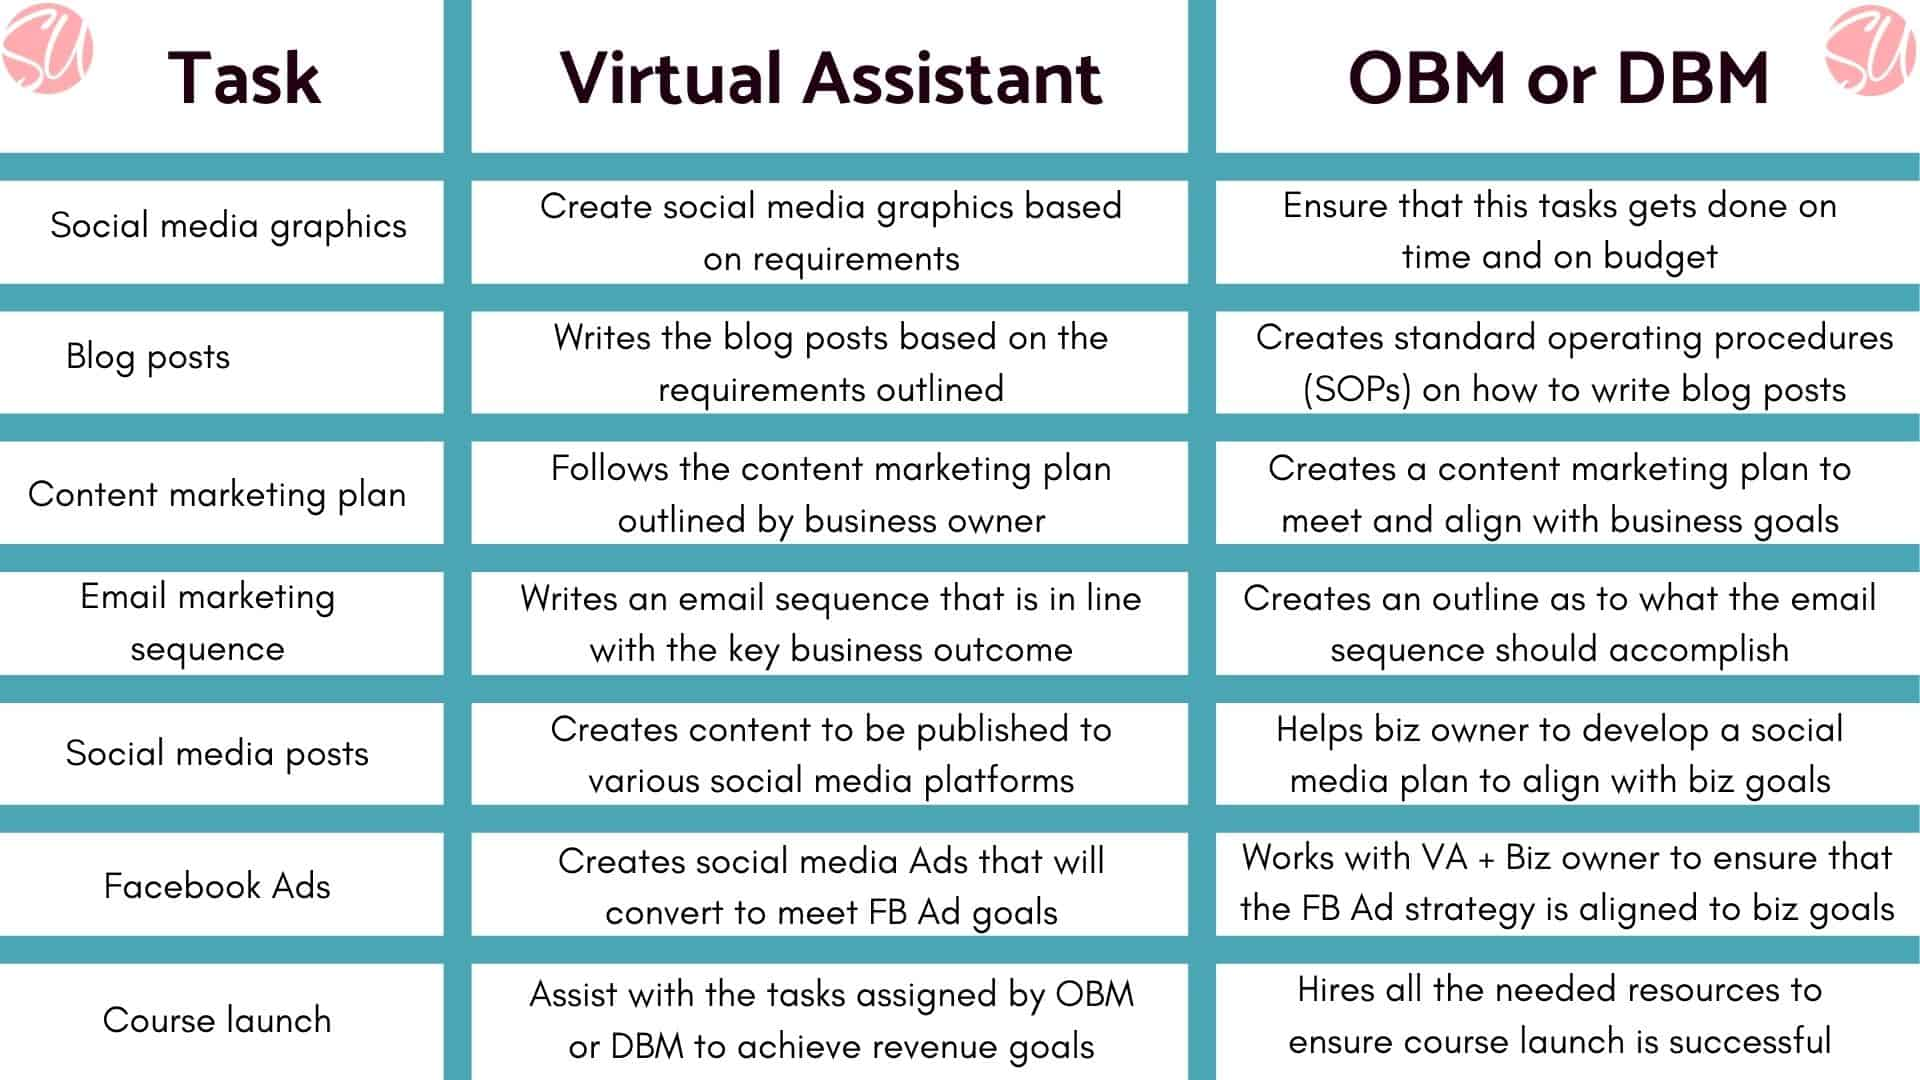 VA vs DBM tasks - branded